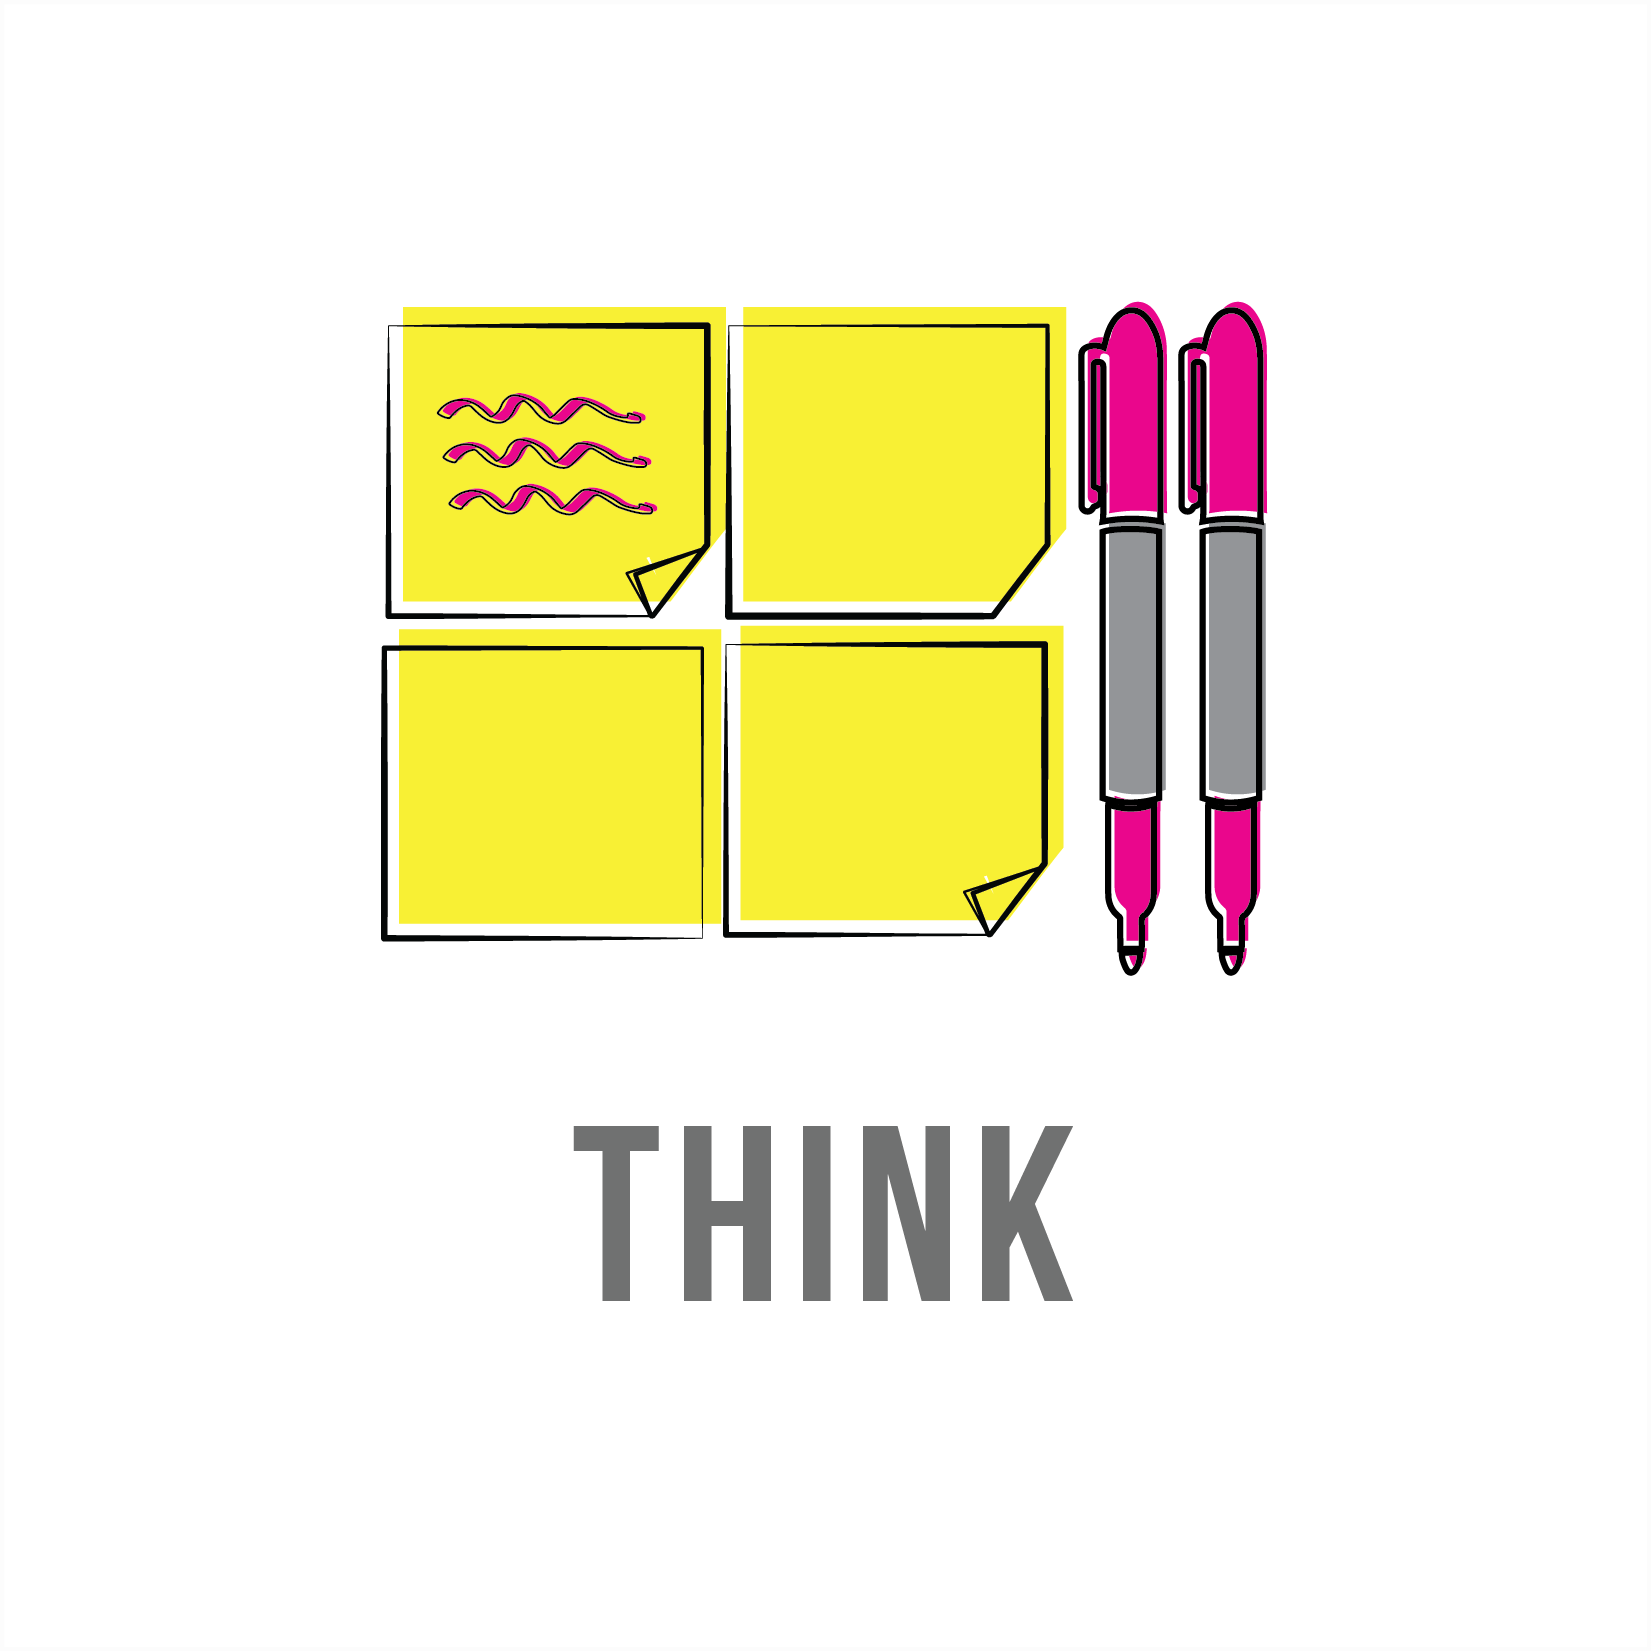 Design Icons_Think_5.png